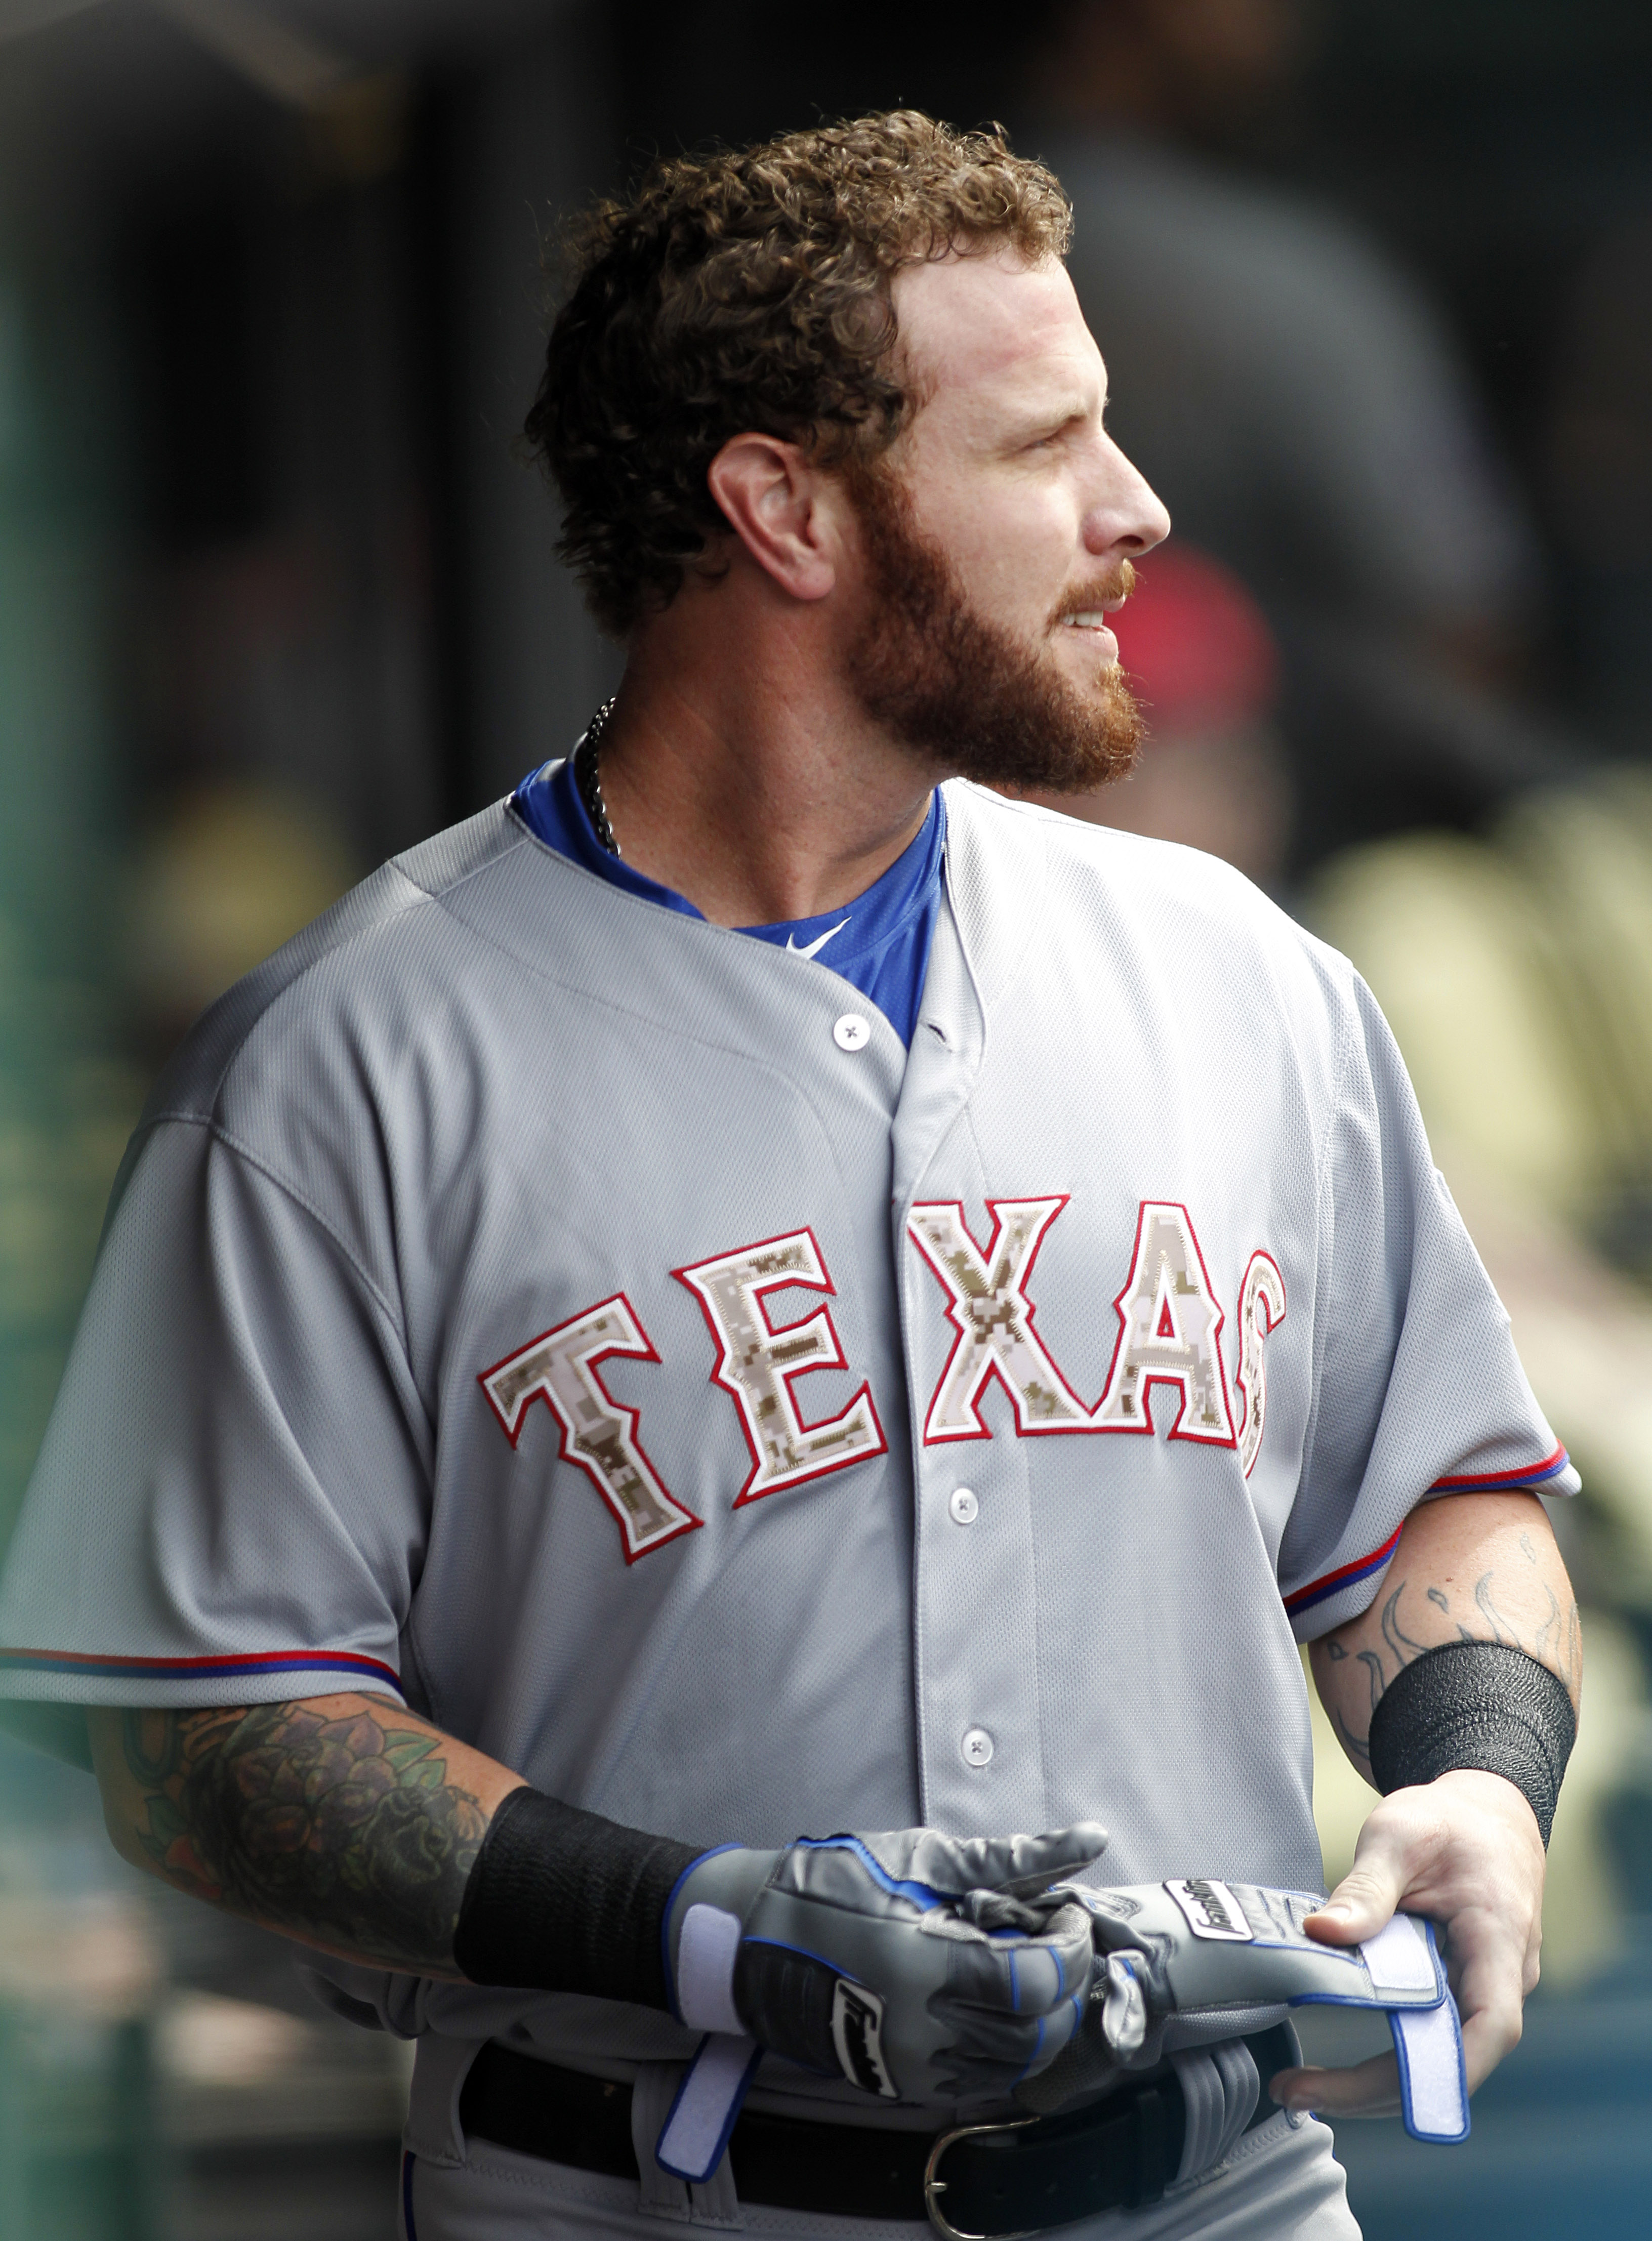 Texas Rangers Josh Hamilton takes off his gloves after striking out during the first inning of a baseball game against the Cleveland Indians, Monday, May 25, 2015, in Cleveland. (AP Photo/Aaron Josefczyk)